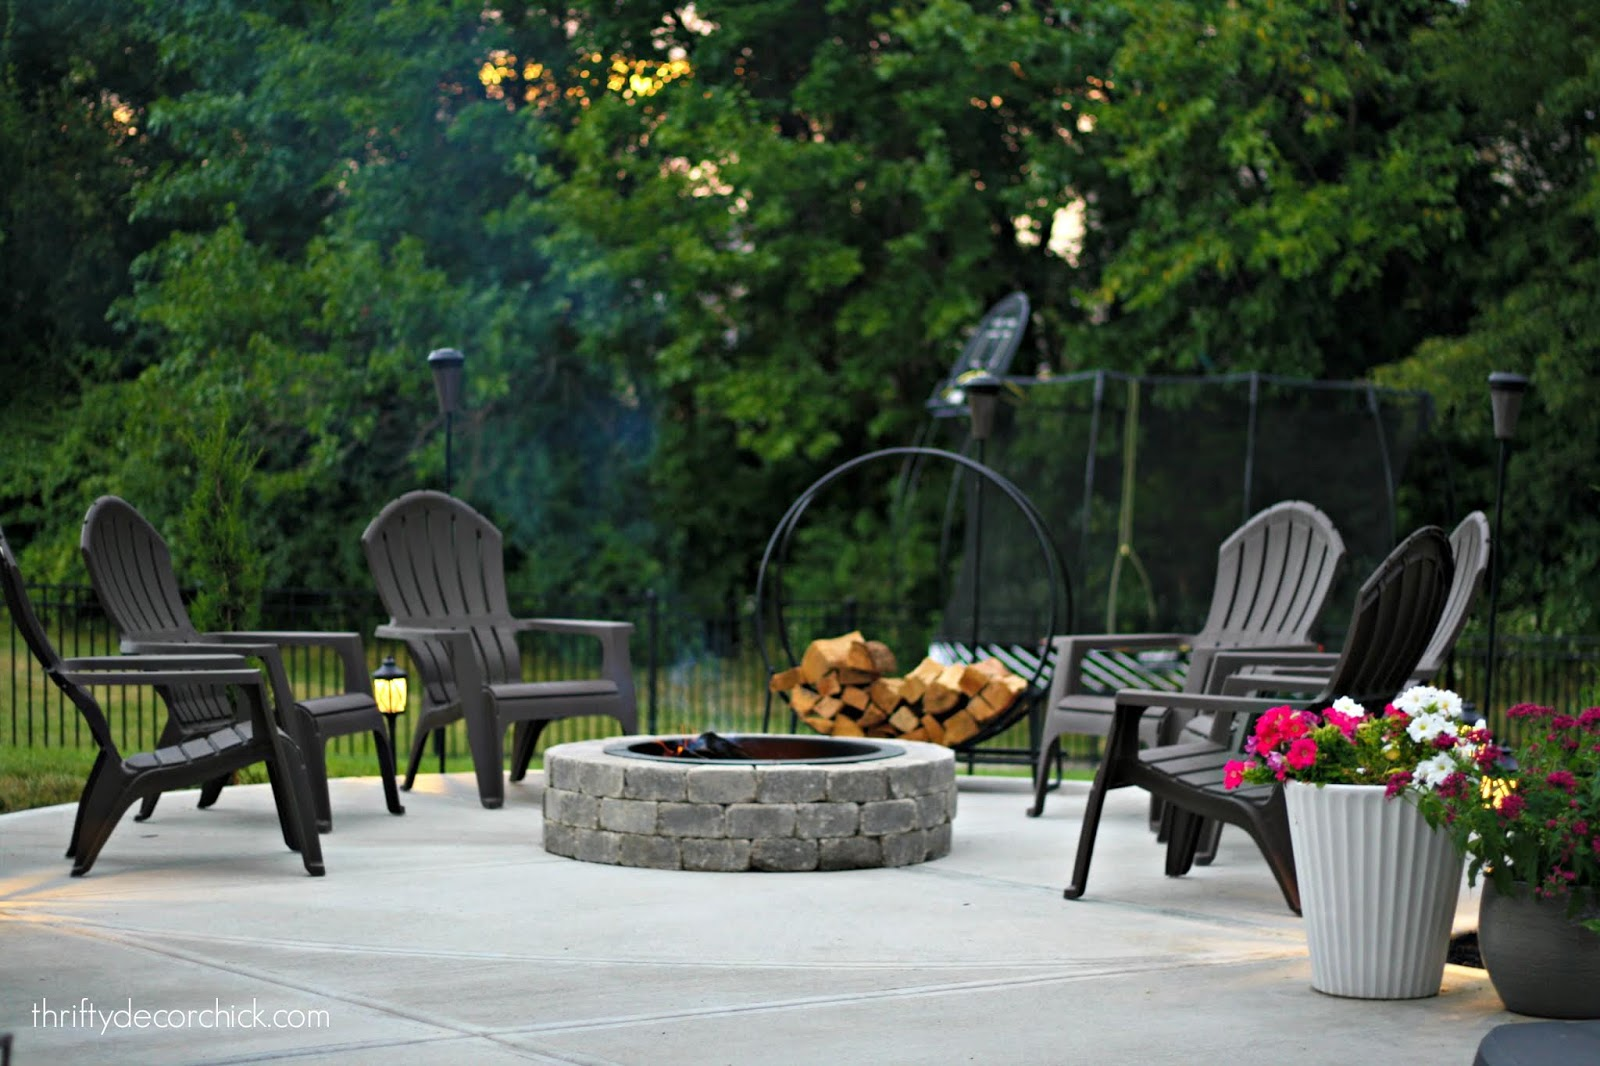 Separate round fire pit patio